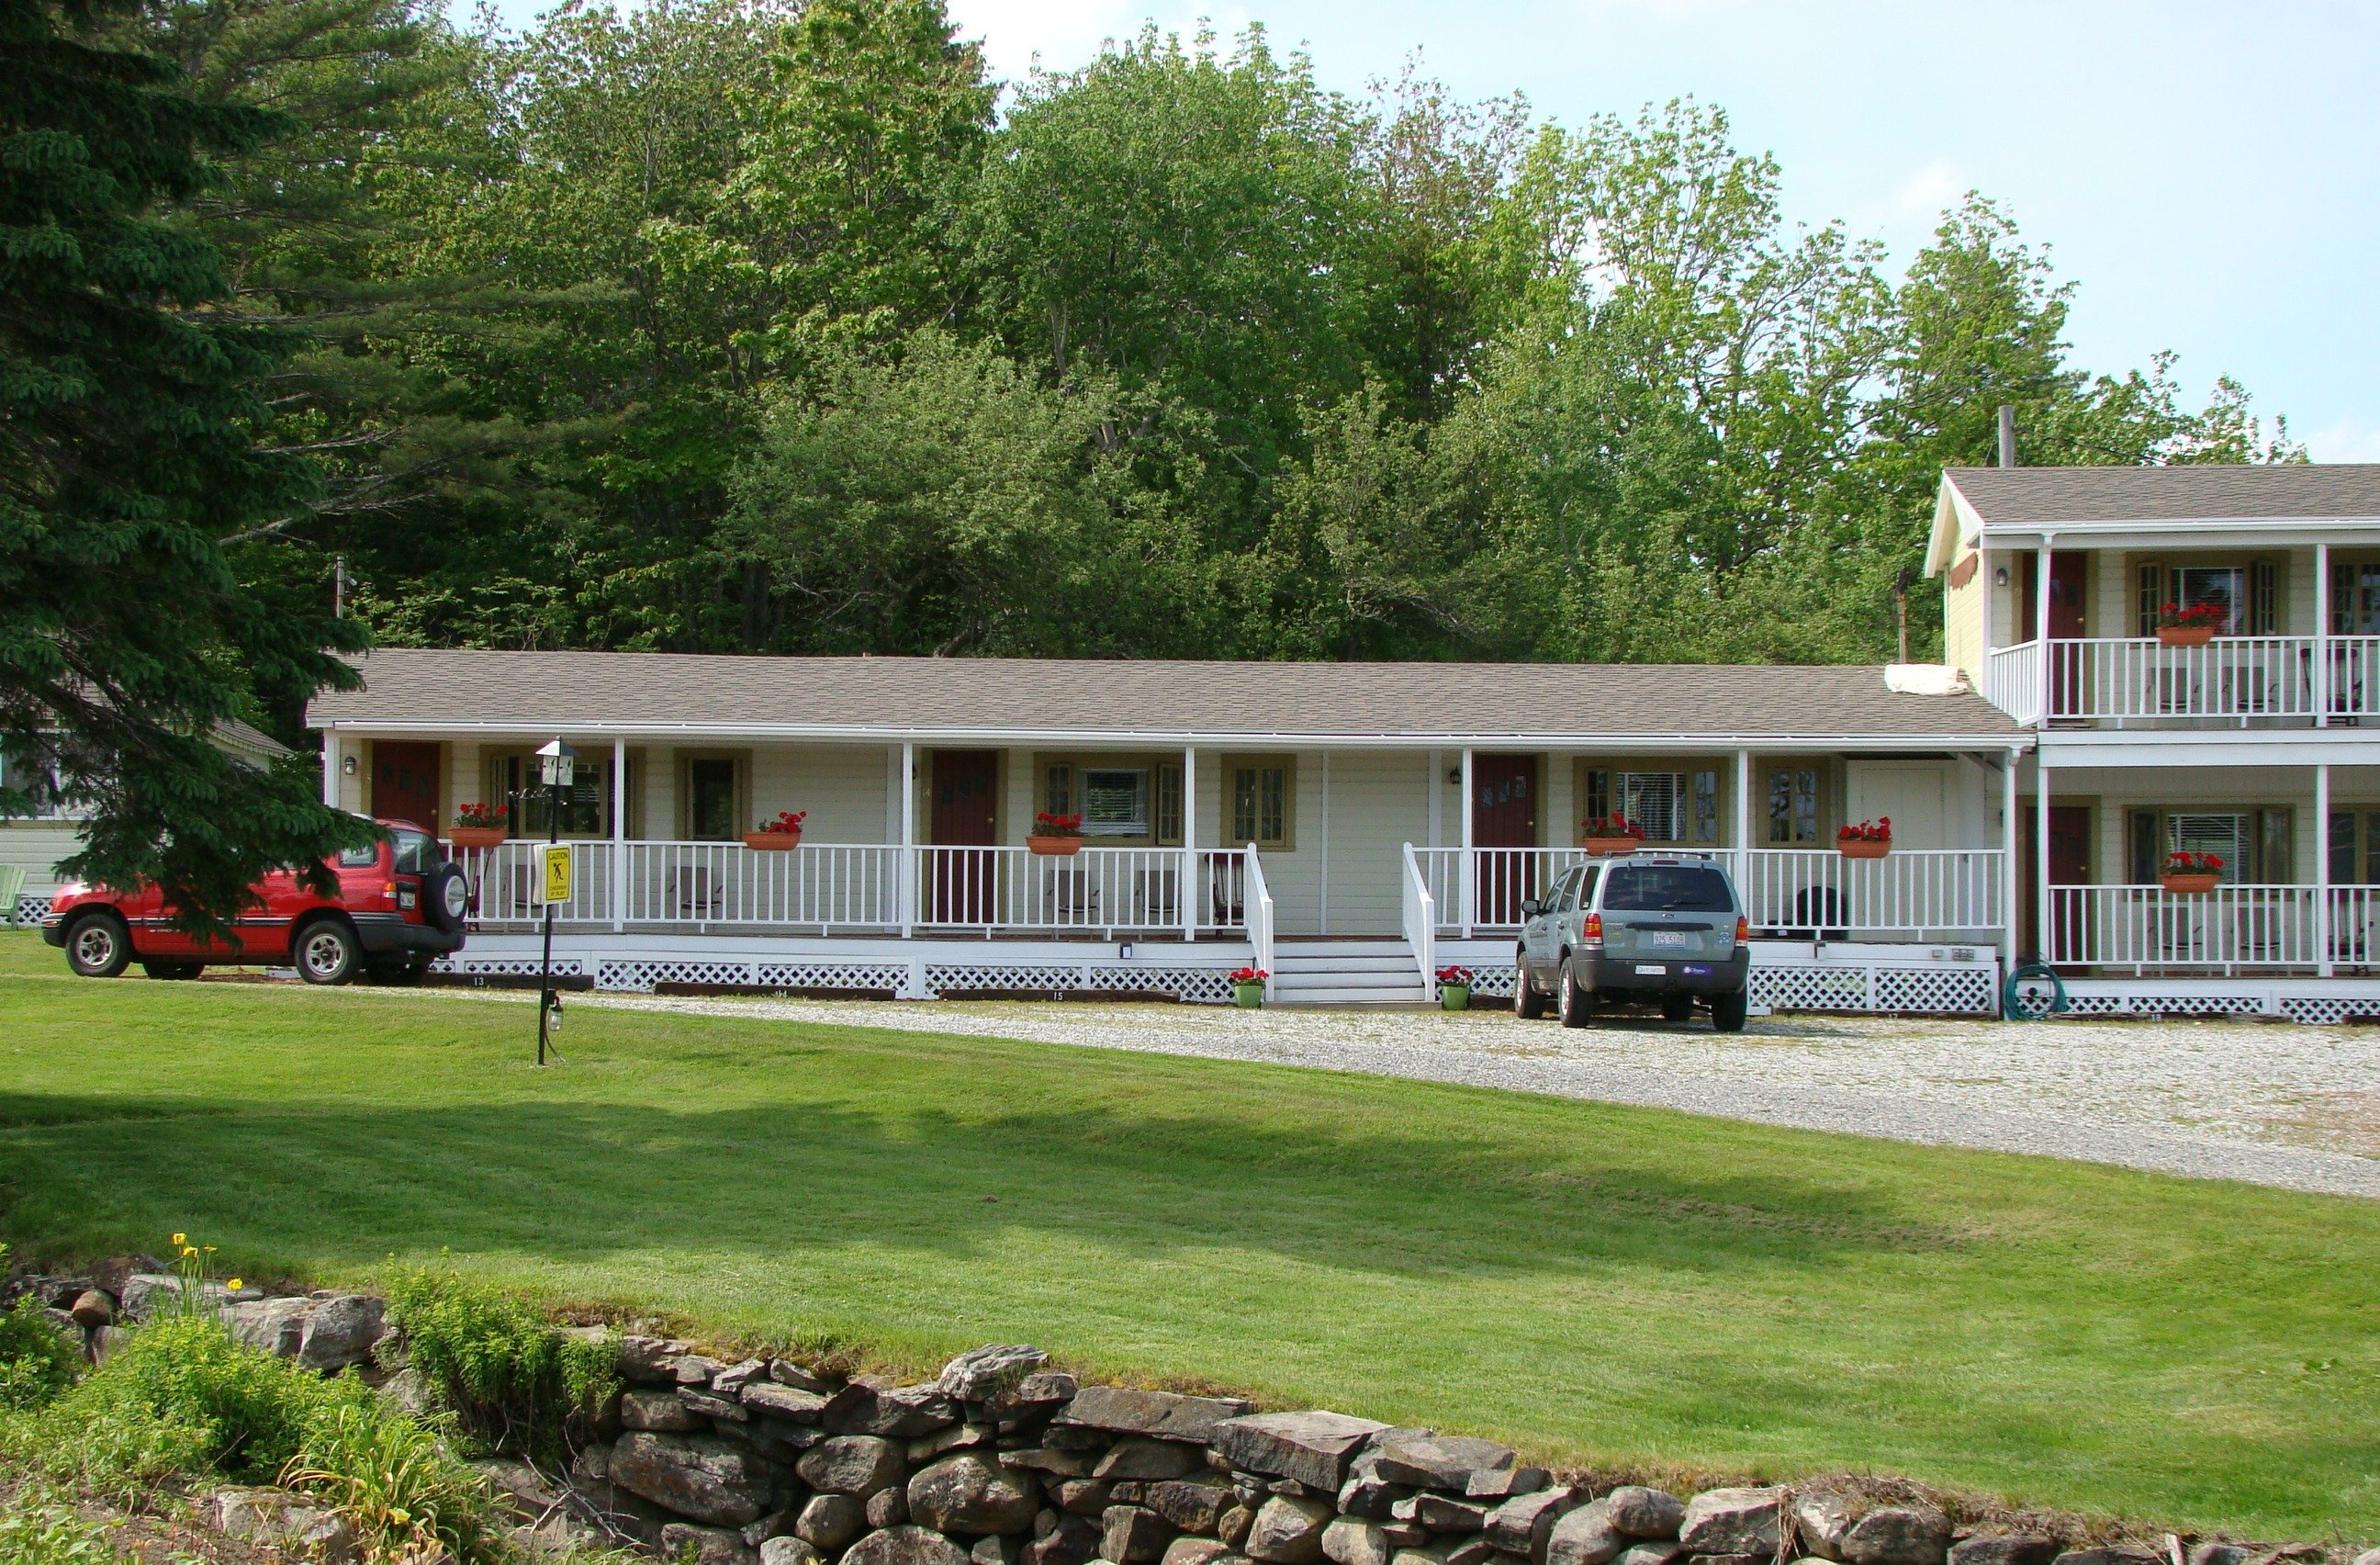 Motel has veranda and rocking chairs with views to Penobscot Bay